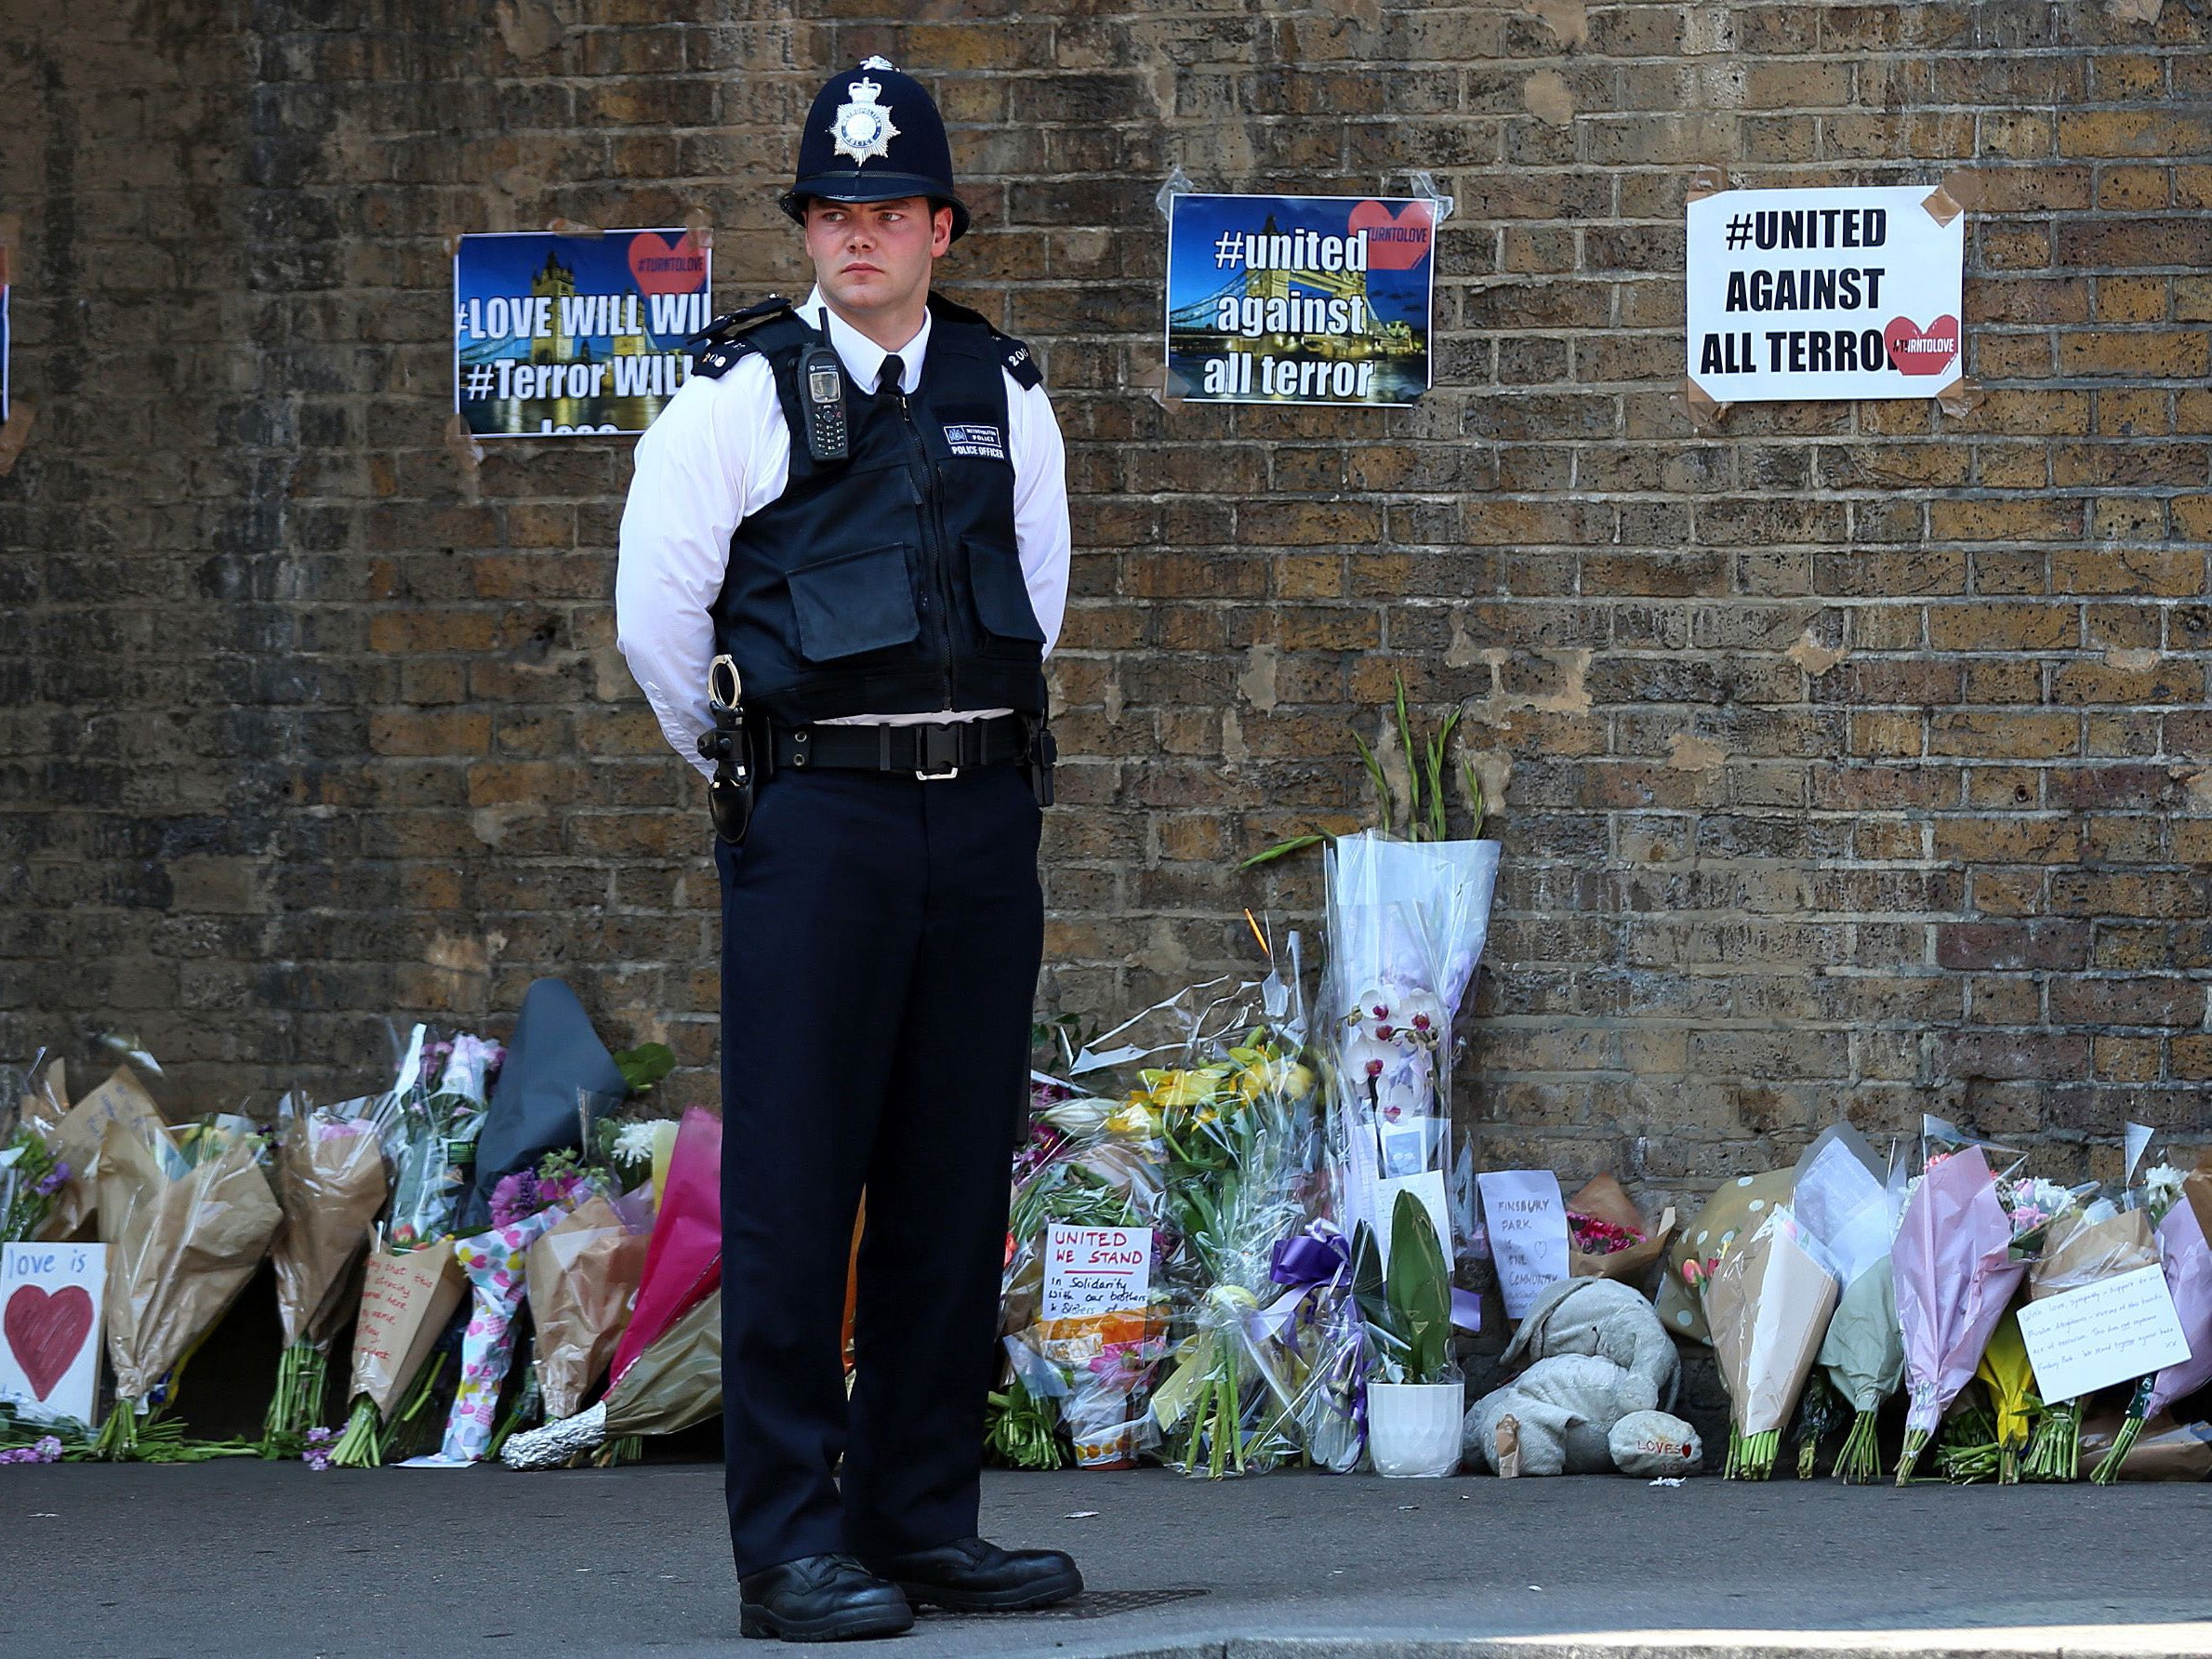 Finsbury park attack trial as it happened court hears of moment van finsbury park attack trial as it happened court hears of moment van intentionally driven into crowd near mosque the independent fandeluxe Gallery